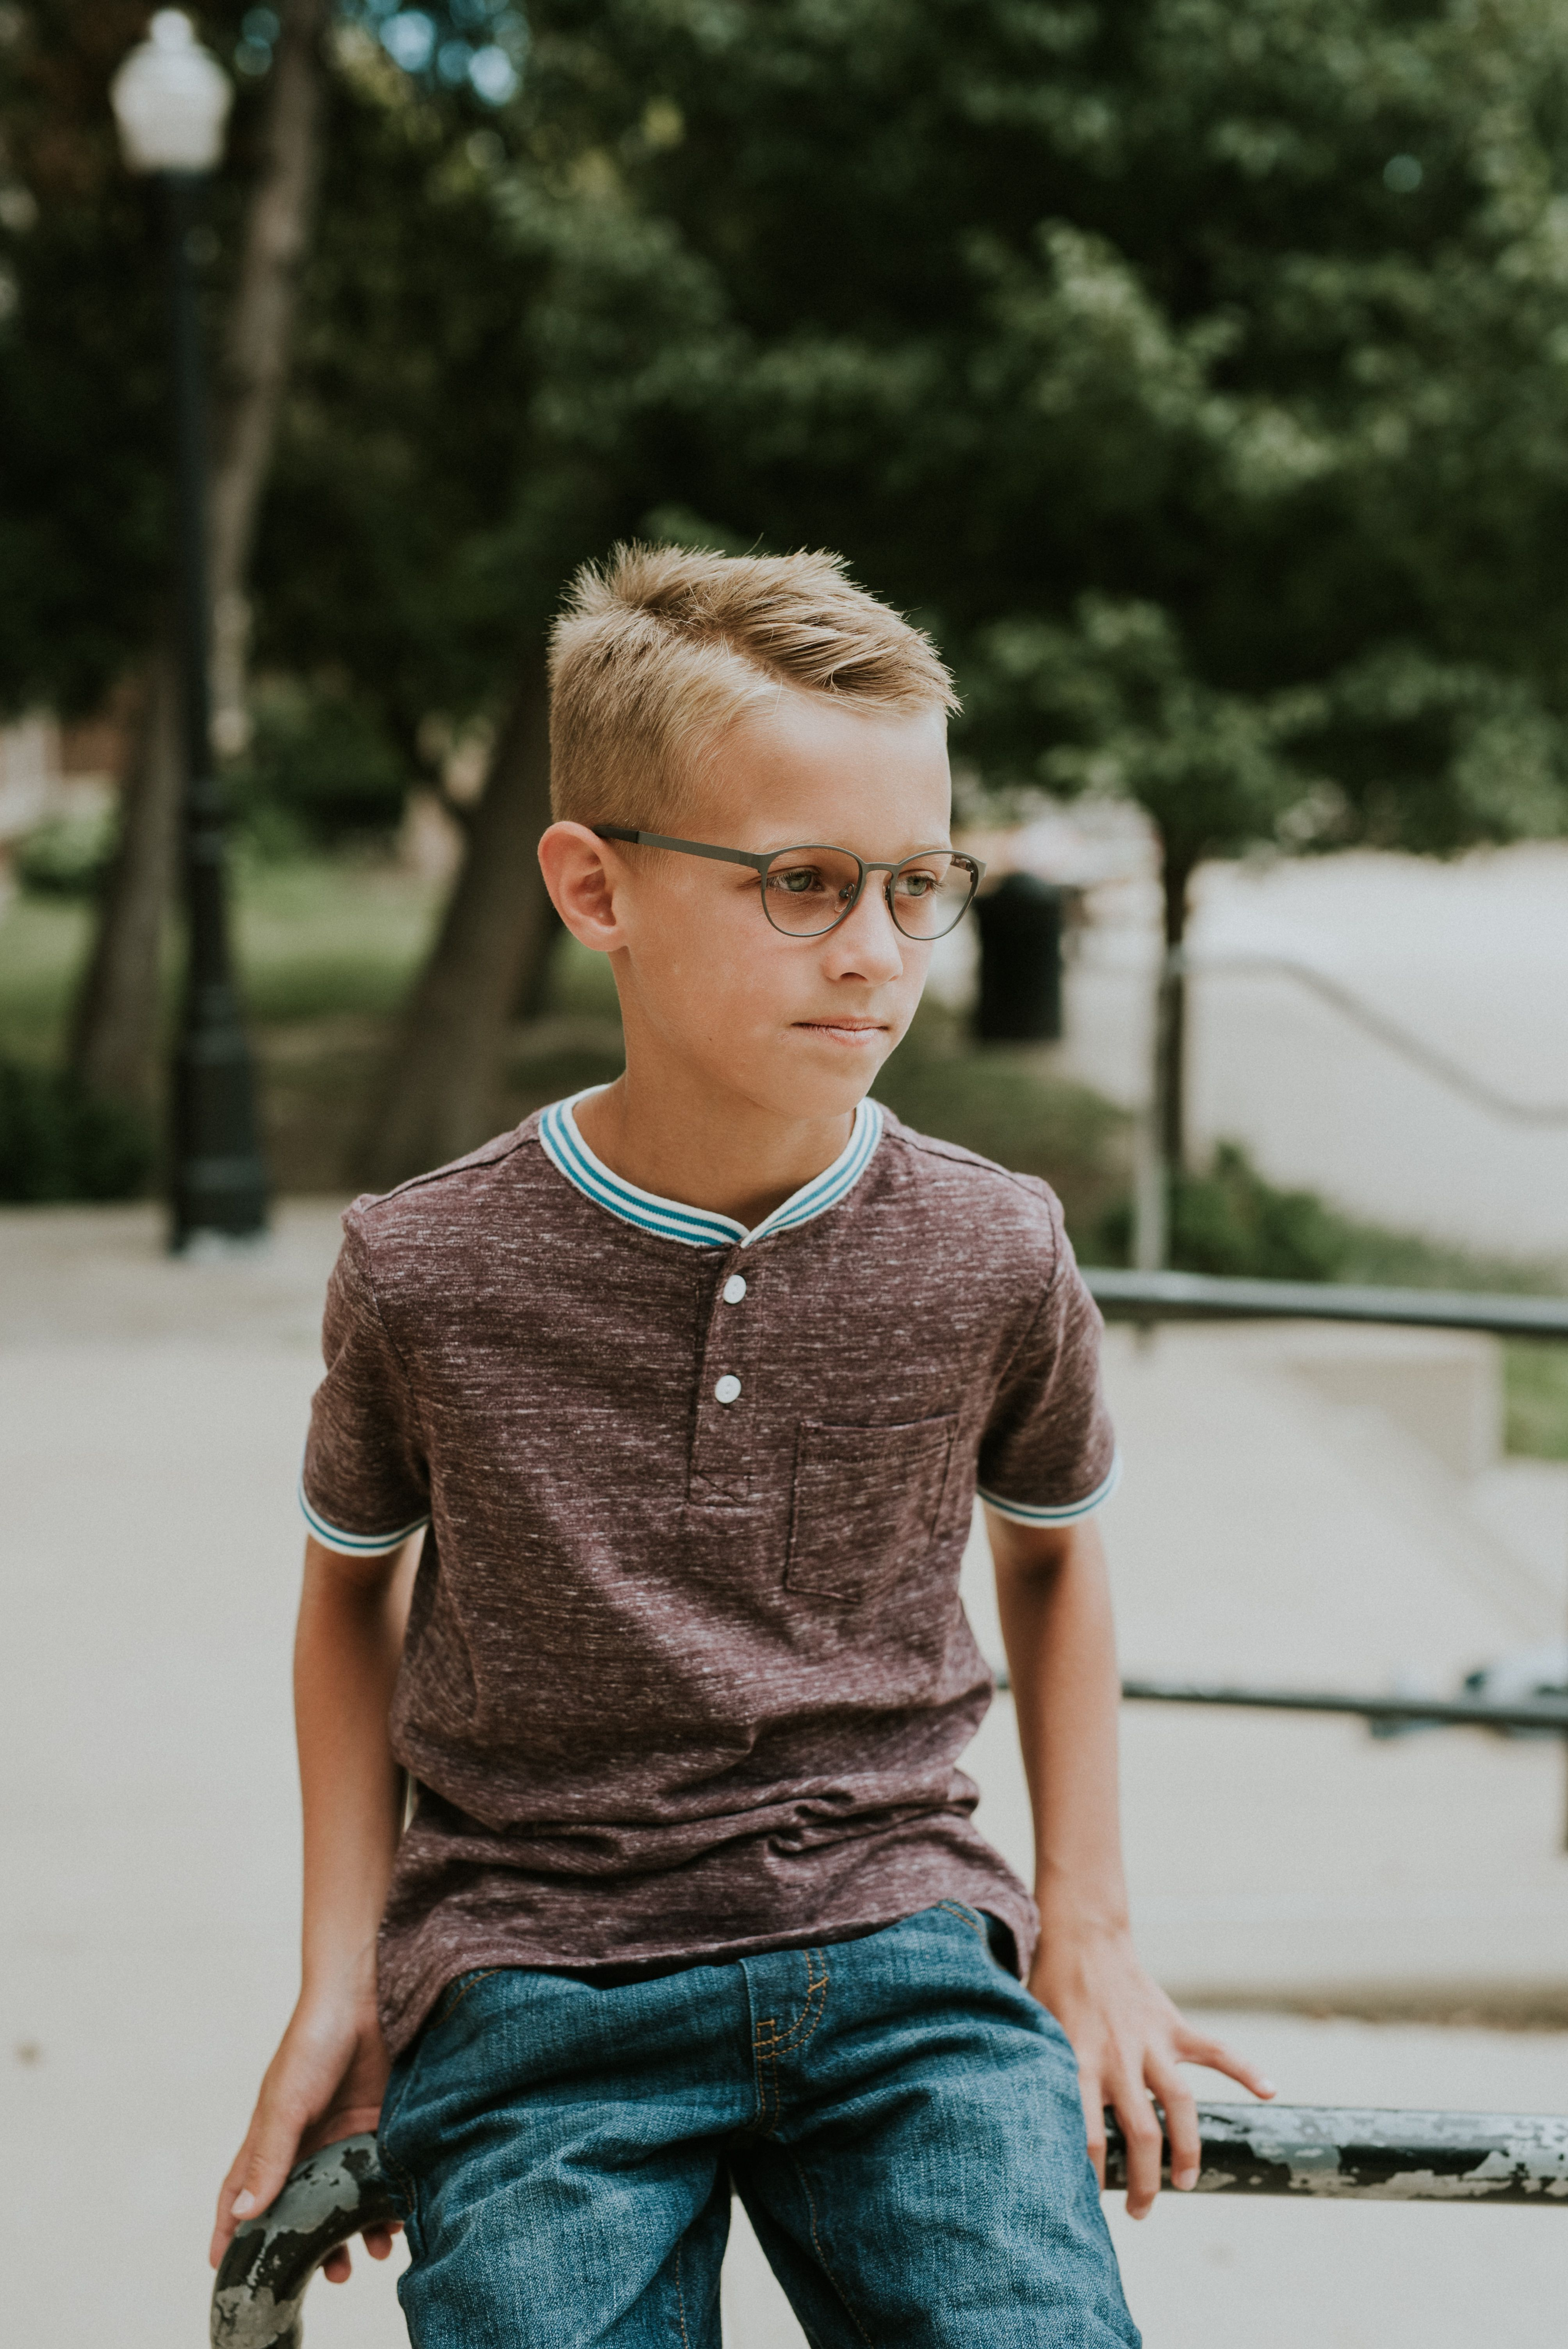 ce4f6e3faa0 ... frame is the perfect mix of a delicate yet flexible material. The  timeless colors available are sure to complement every kid s face shape and  size.